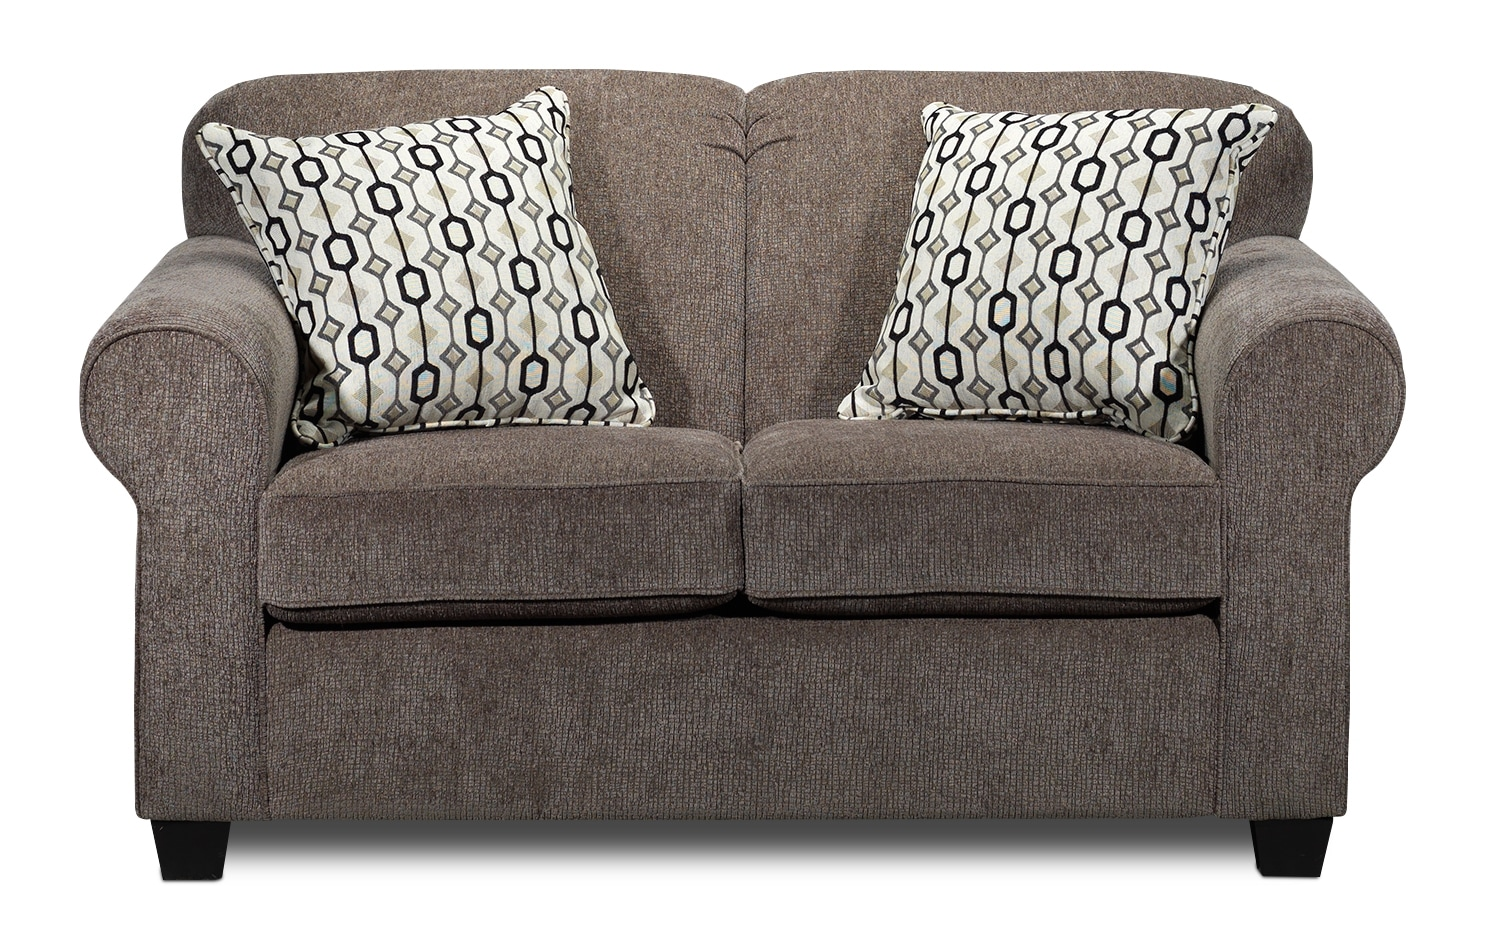 Living Room Furniture - Aristotle Loveseat - Taupe